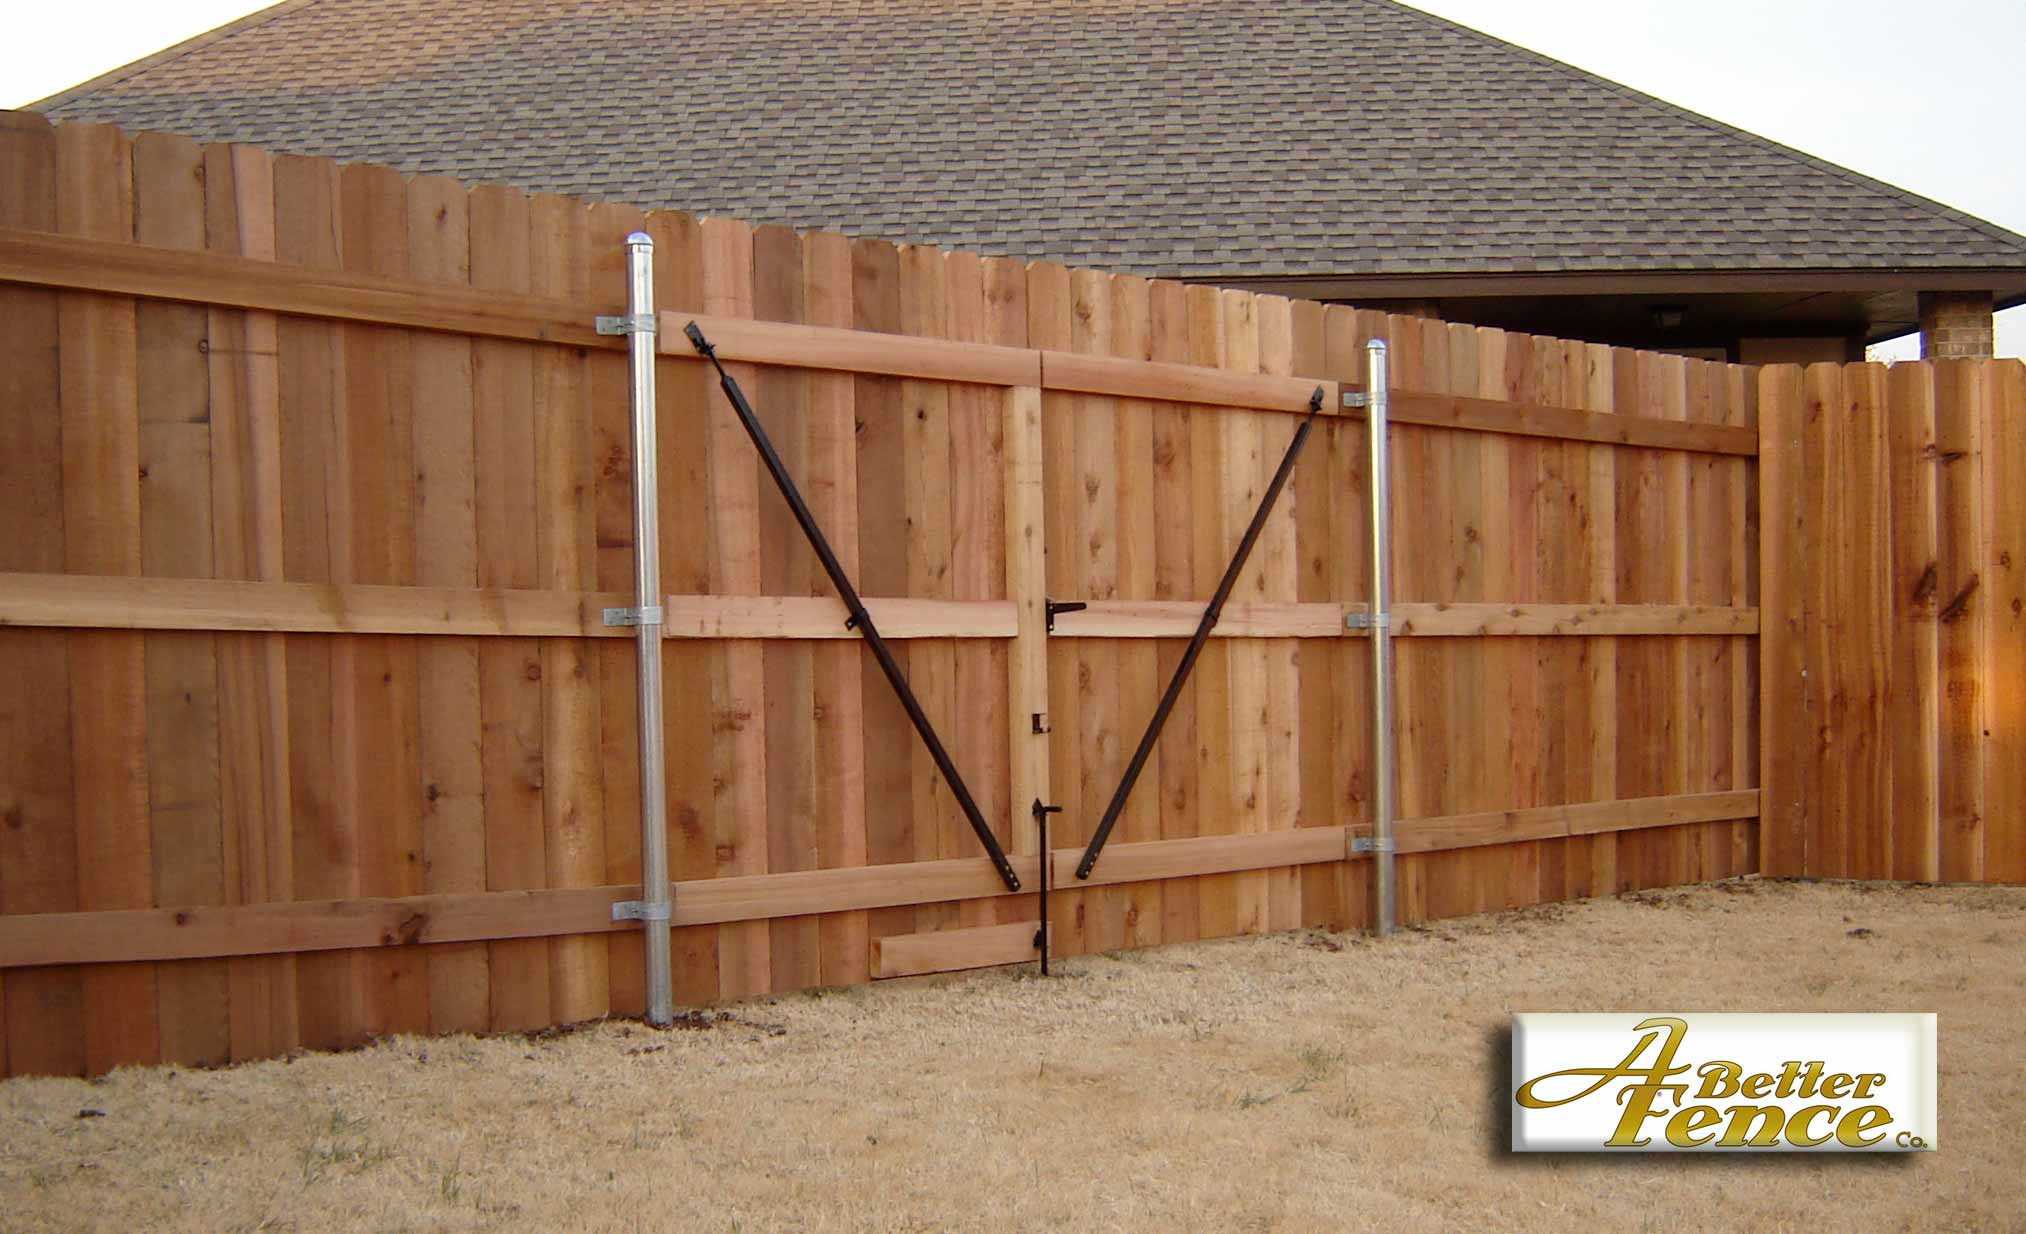 How To Build A Double Privacy Fence Gate Plans Diy Free